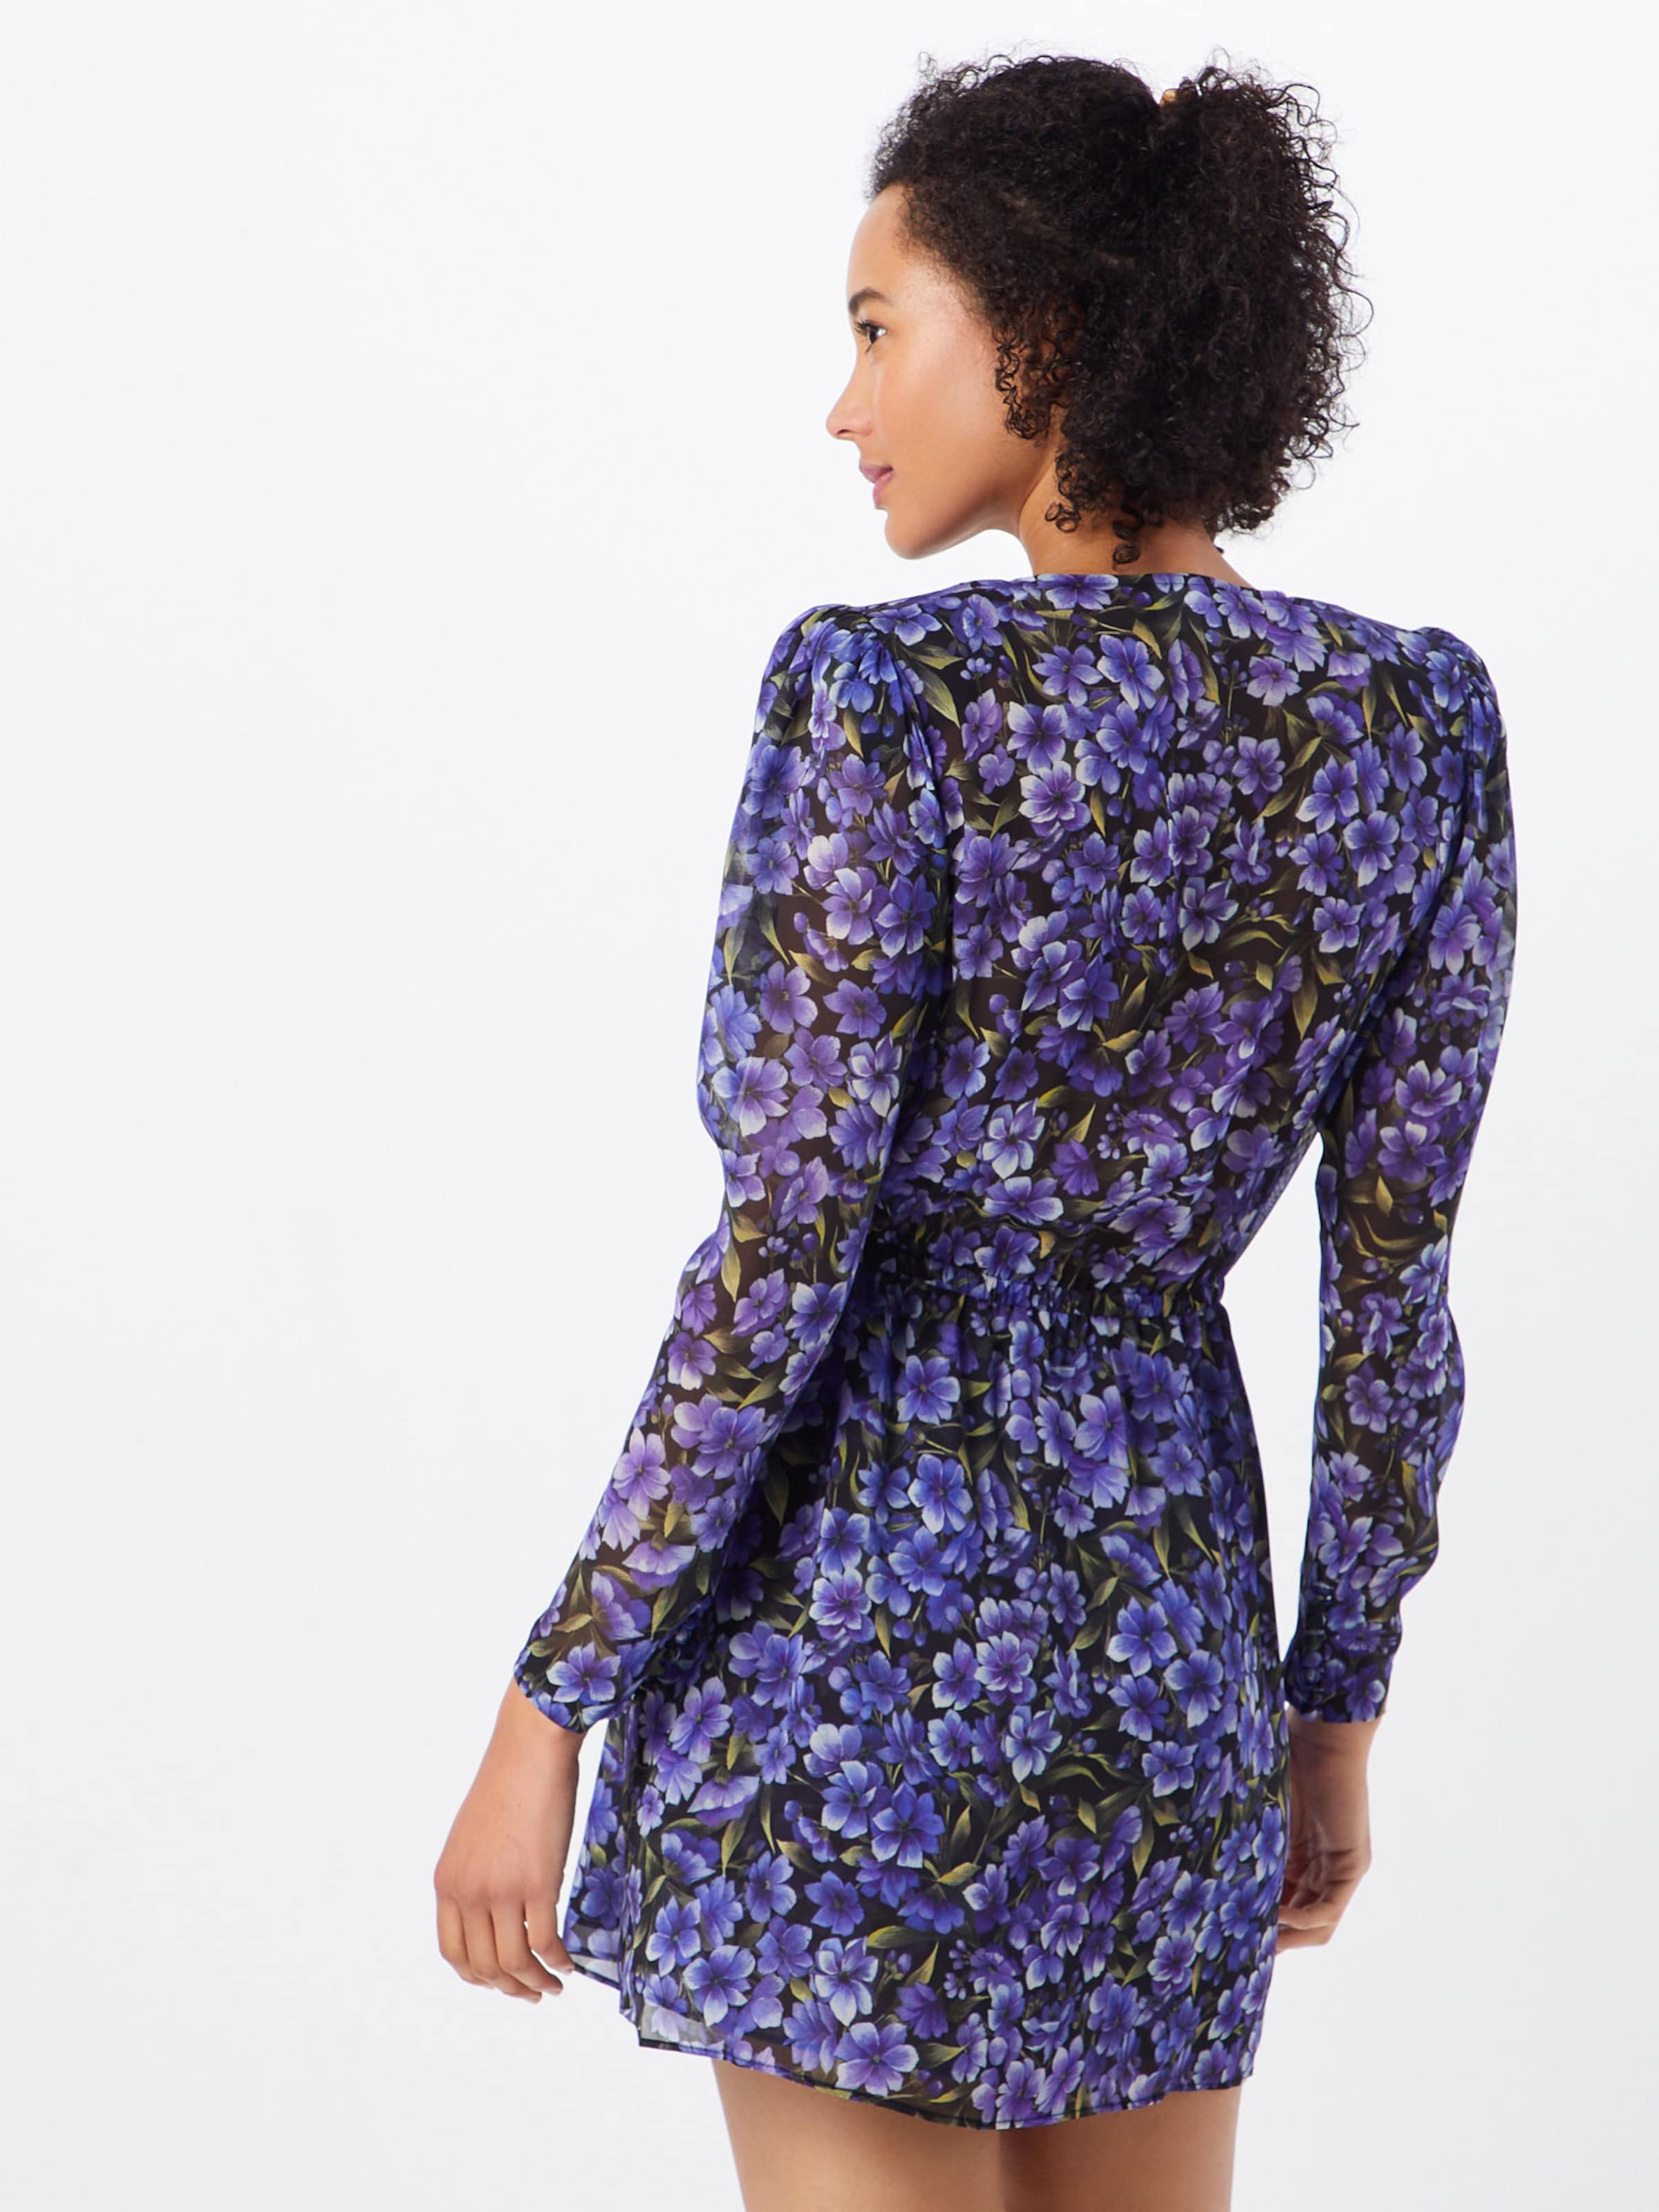 Kooples Violet En The Robe FoncéNoir 'frob18026k' drxCoWQBe